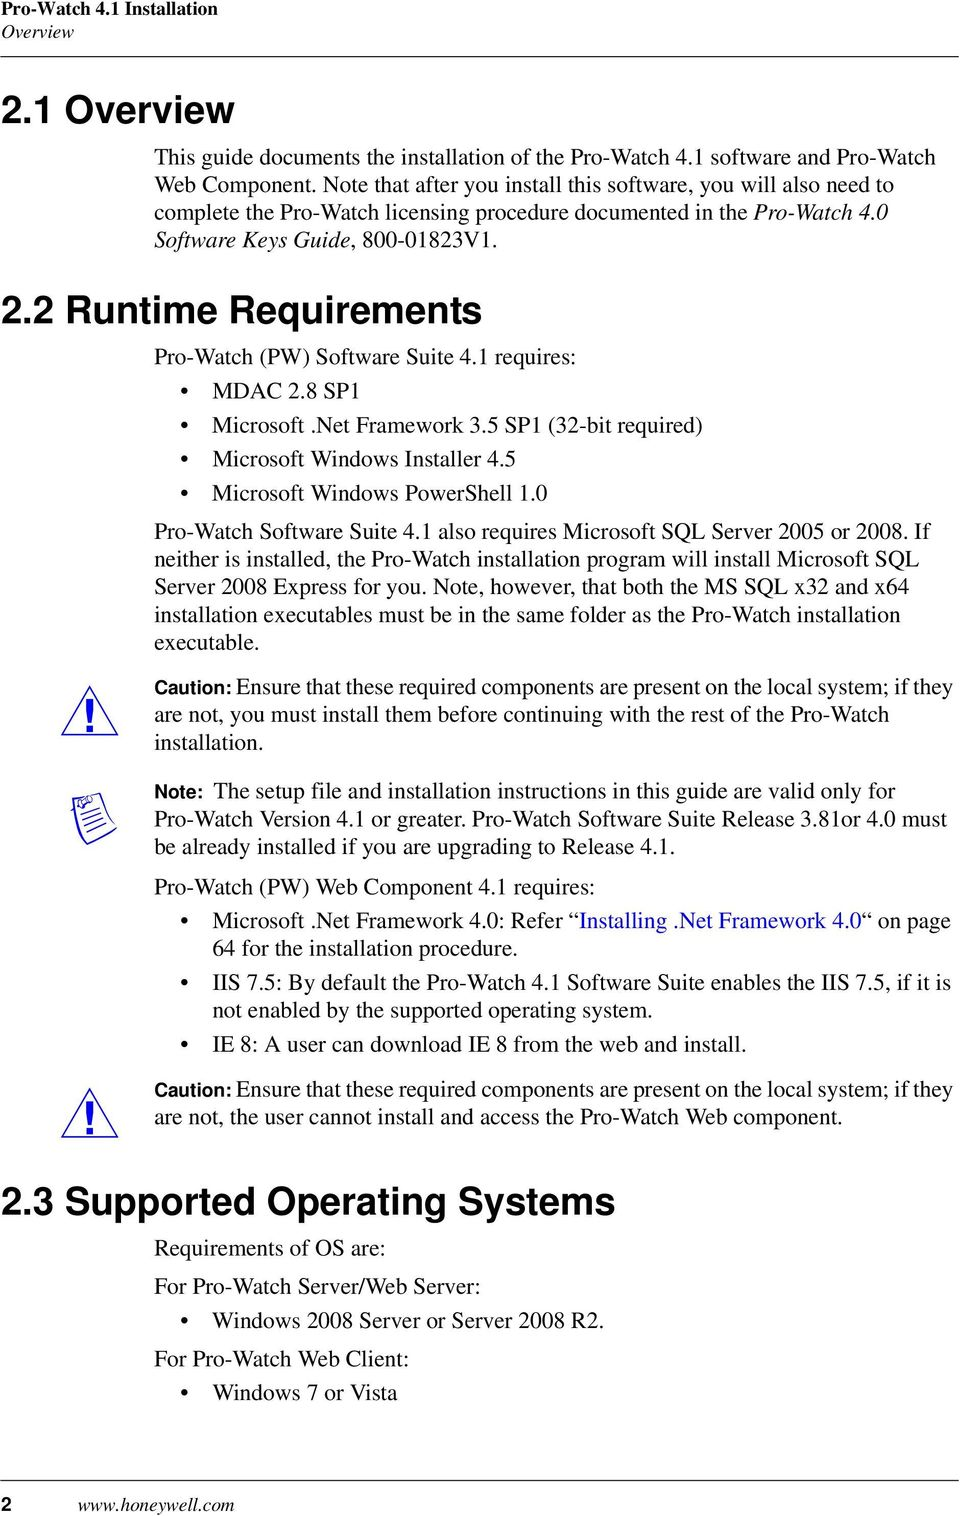 2 Runtime Requirements Pro-Watch (PW) Software Suite 4.1 requires: MDAC 2.8 SP1 Microsoft.Net Framework 3.5 SP1 (32-bit required) Microsoft Windows Installer 4.5 Microsoft Windows PowerShell 1.